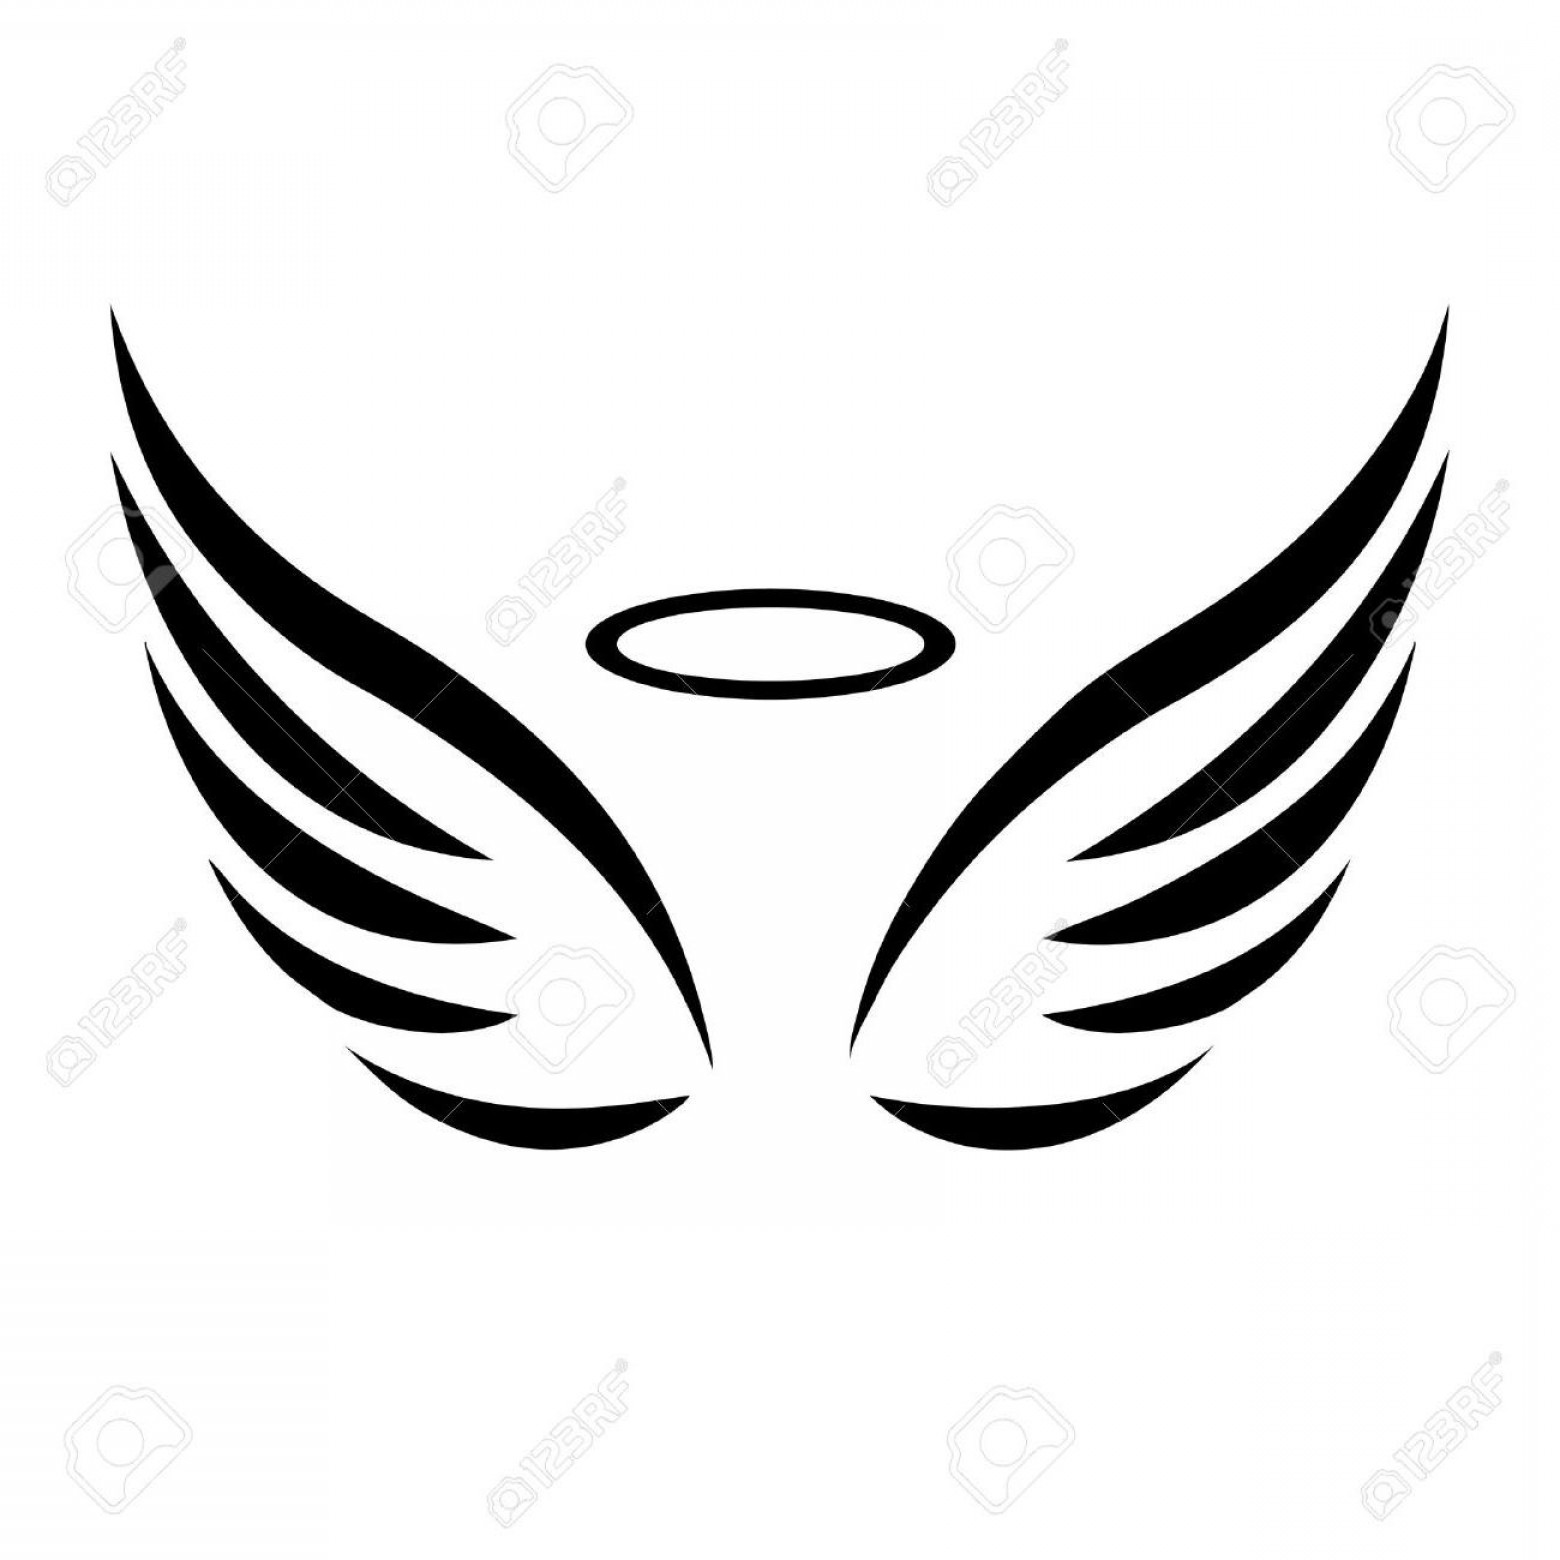 Boy angel wings soidergi. Wing clipart black and white